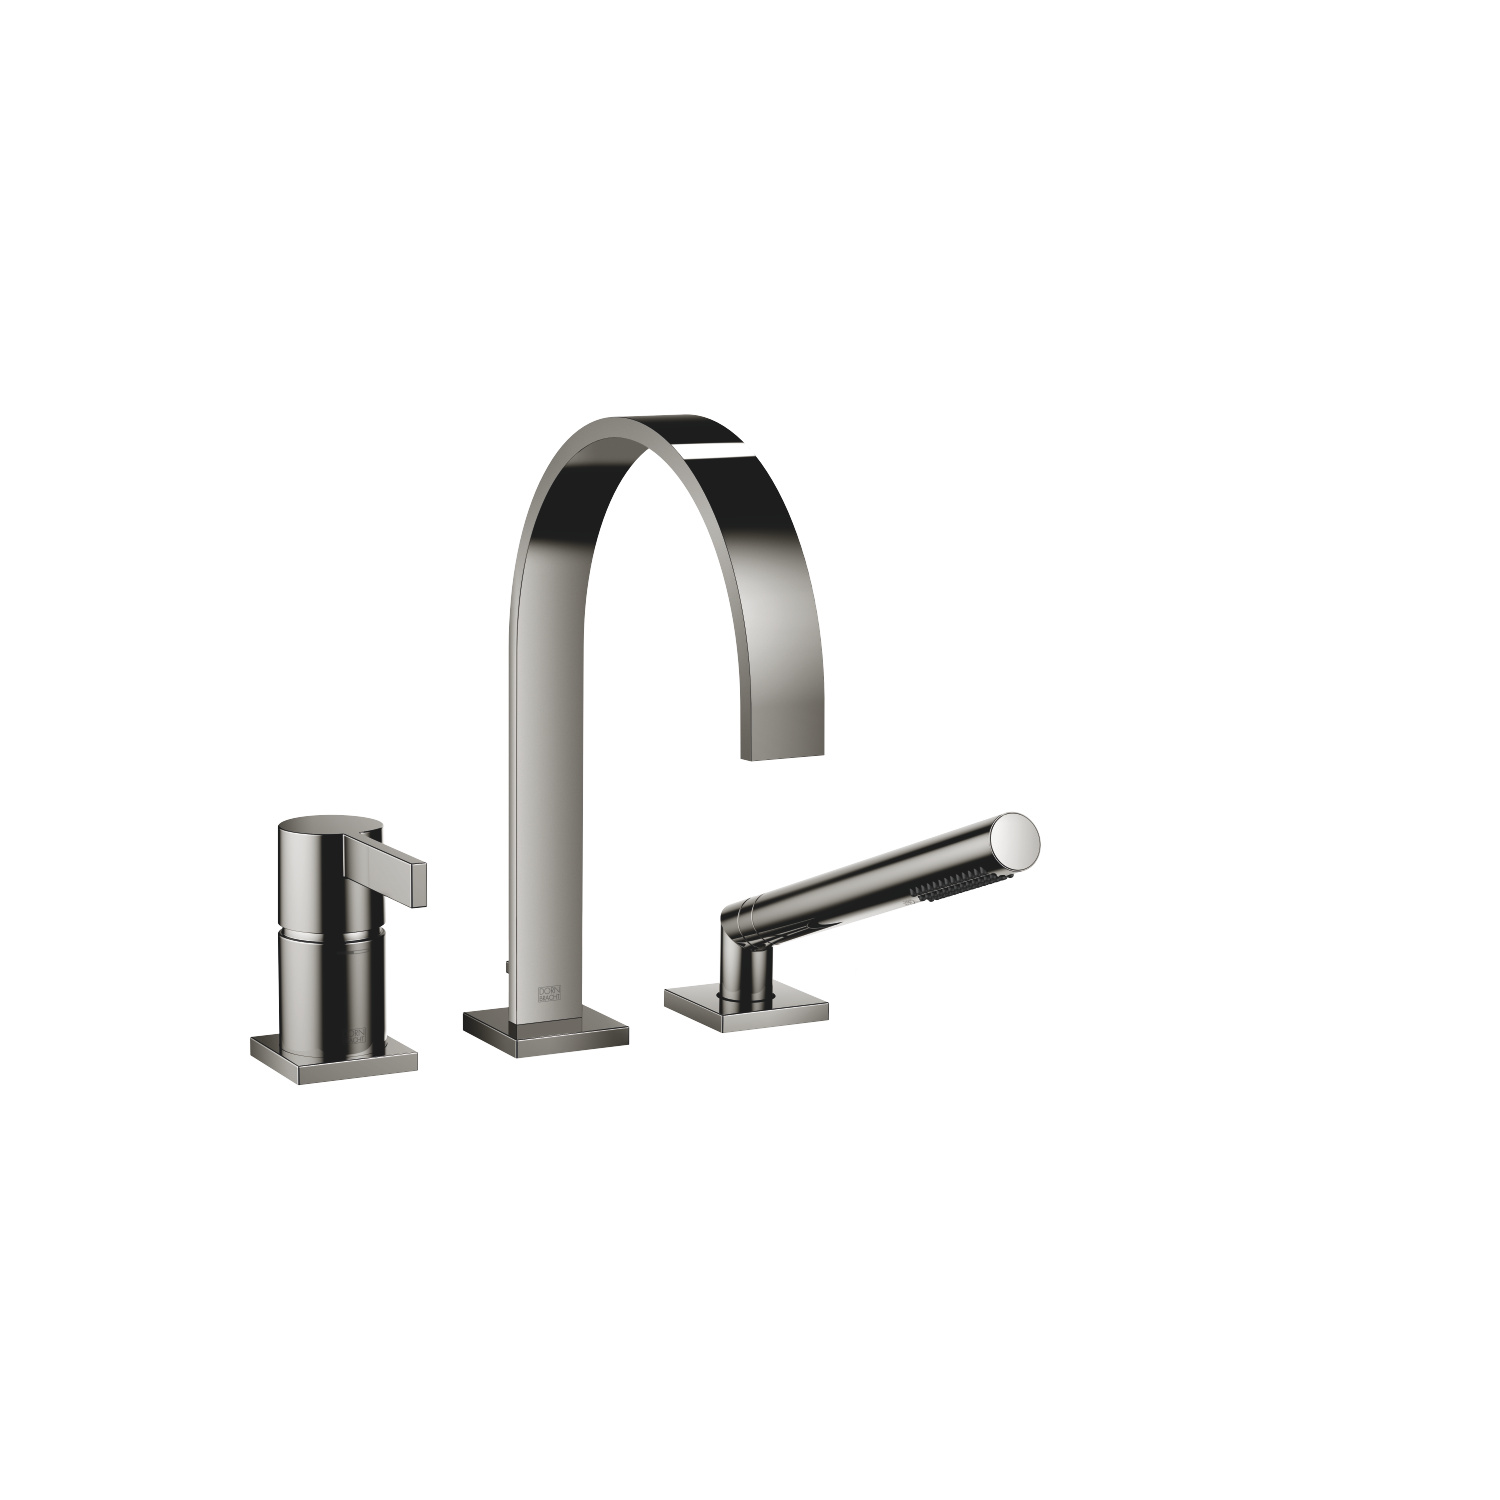 Three-hole single-lever bath mixer for bath rim or tile edge installation - platinum - 27 412 782-08